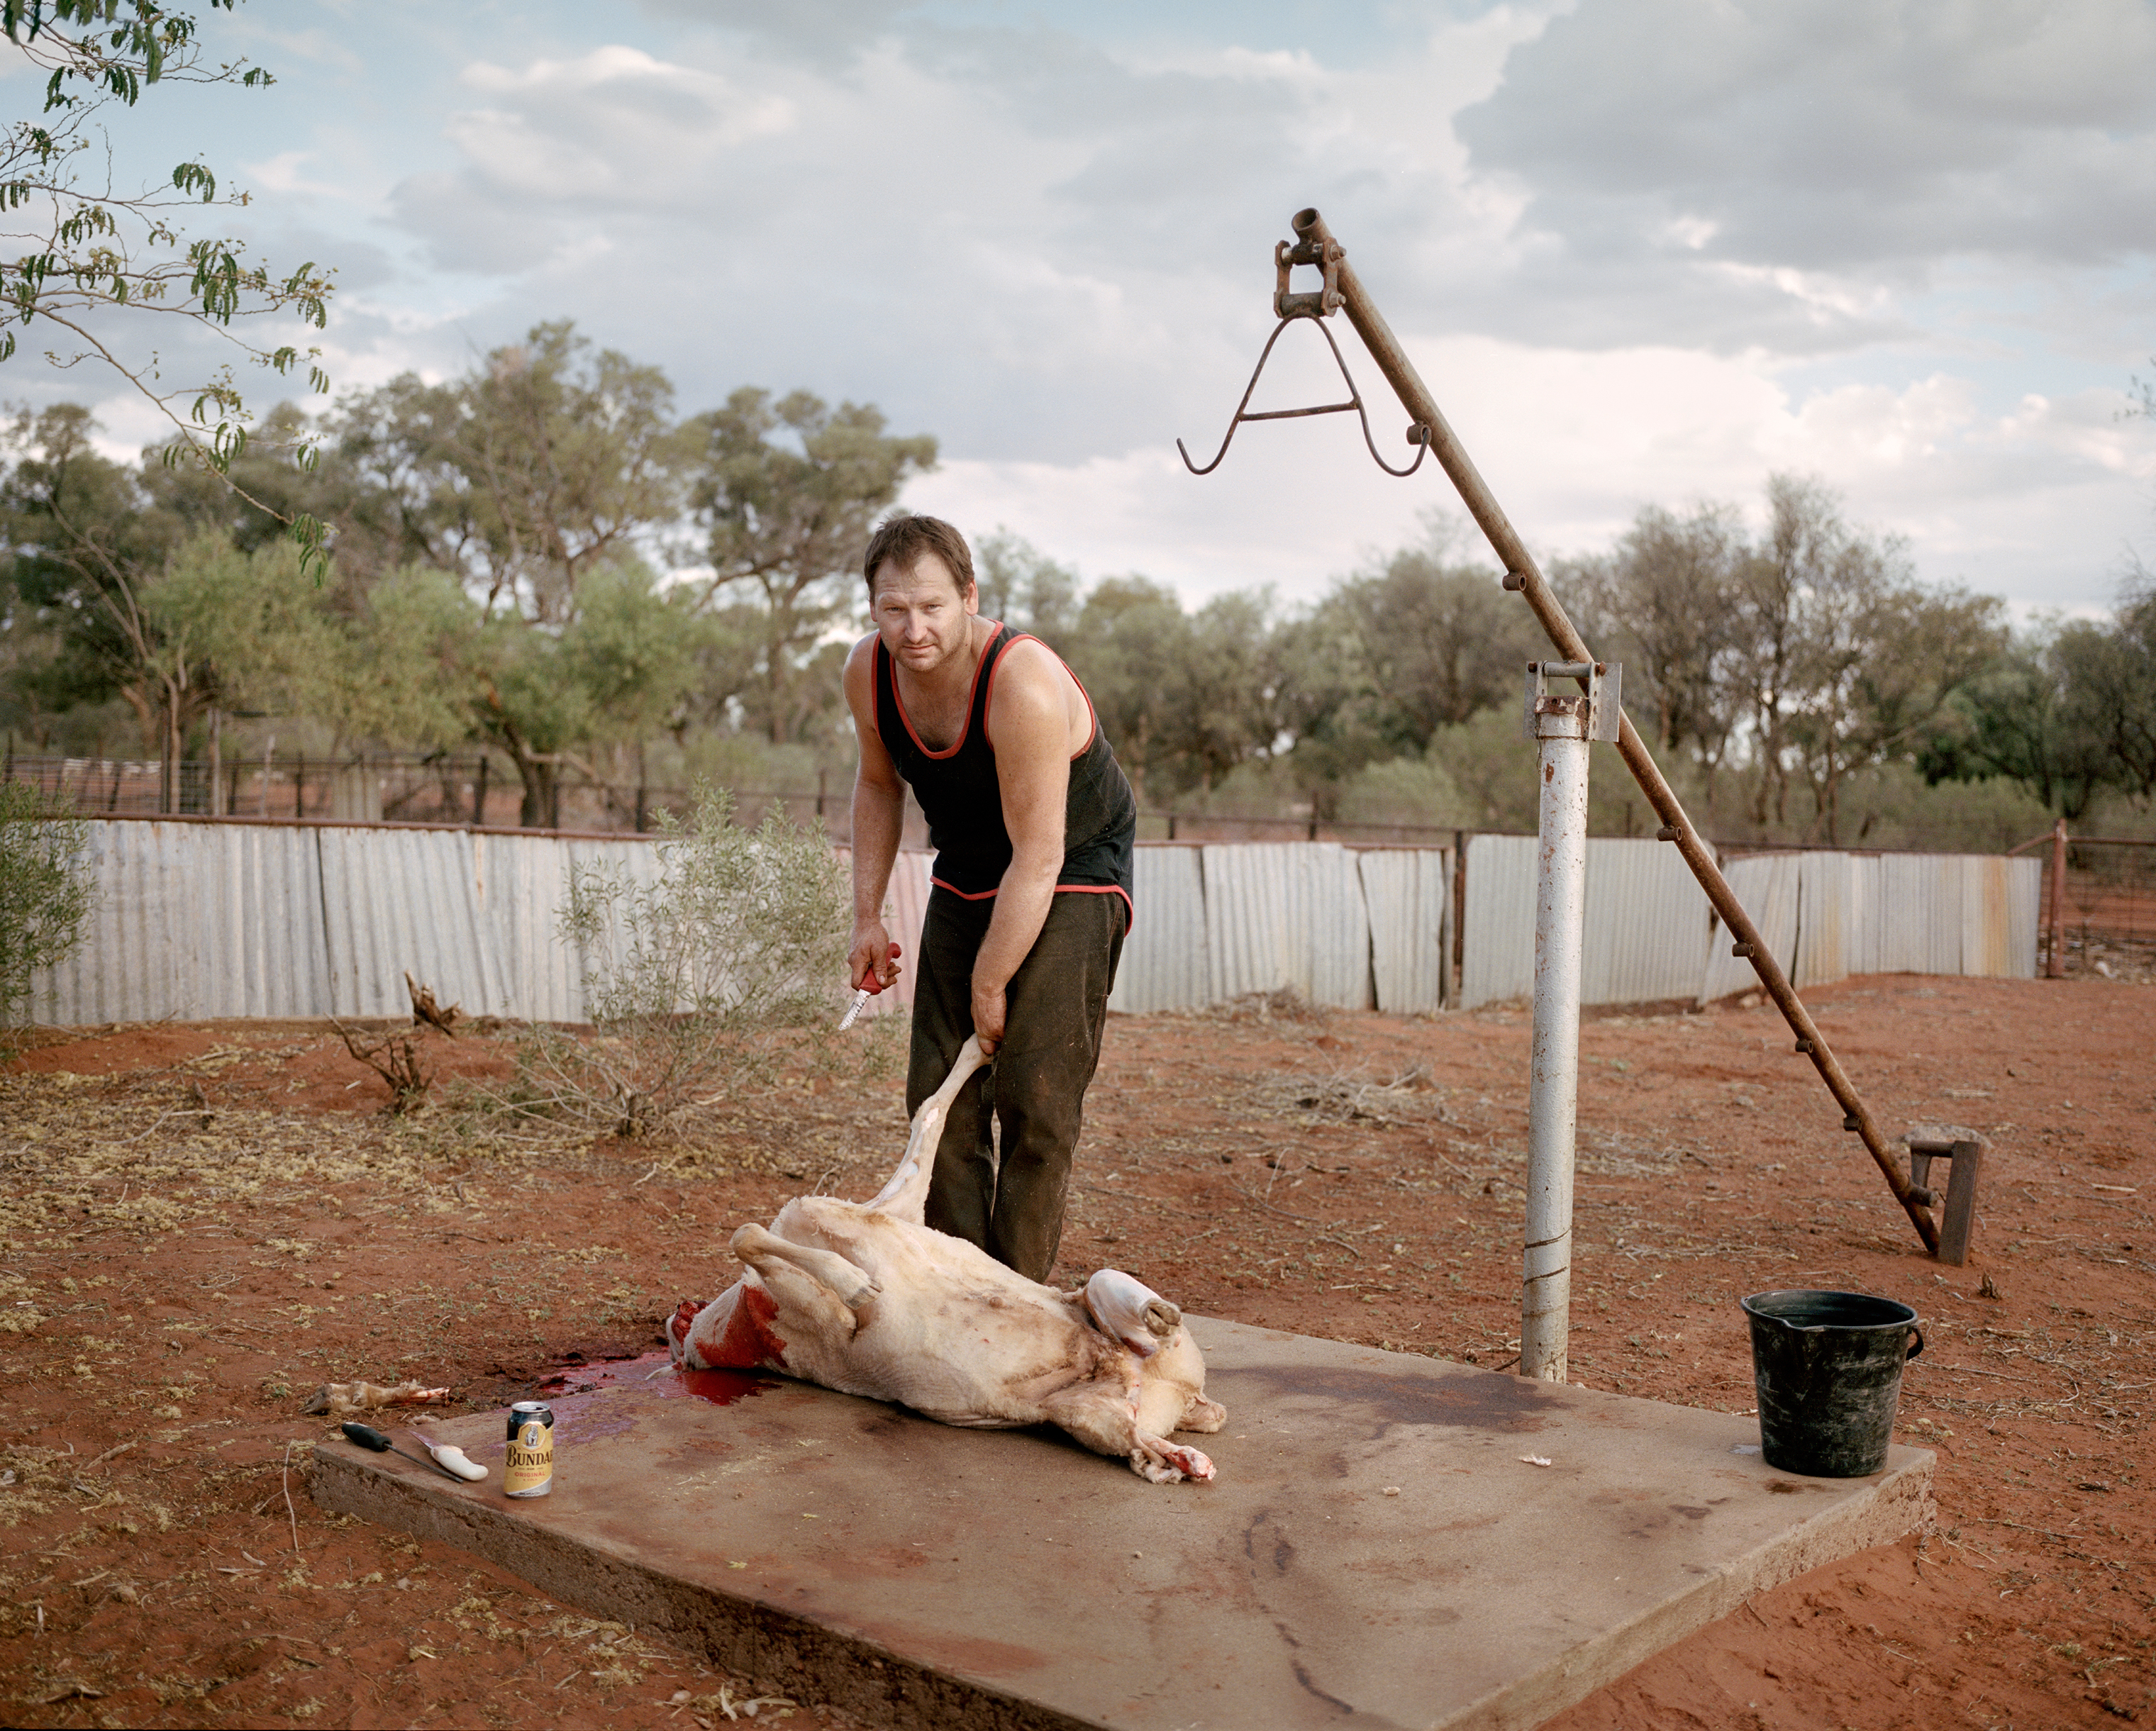 Contract shearer James Tubman slaughters a sheep for food on Turn Turn Station, near Eulo, in Queensland in November.